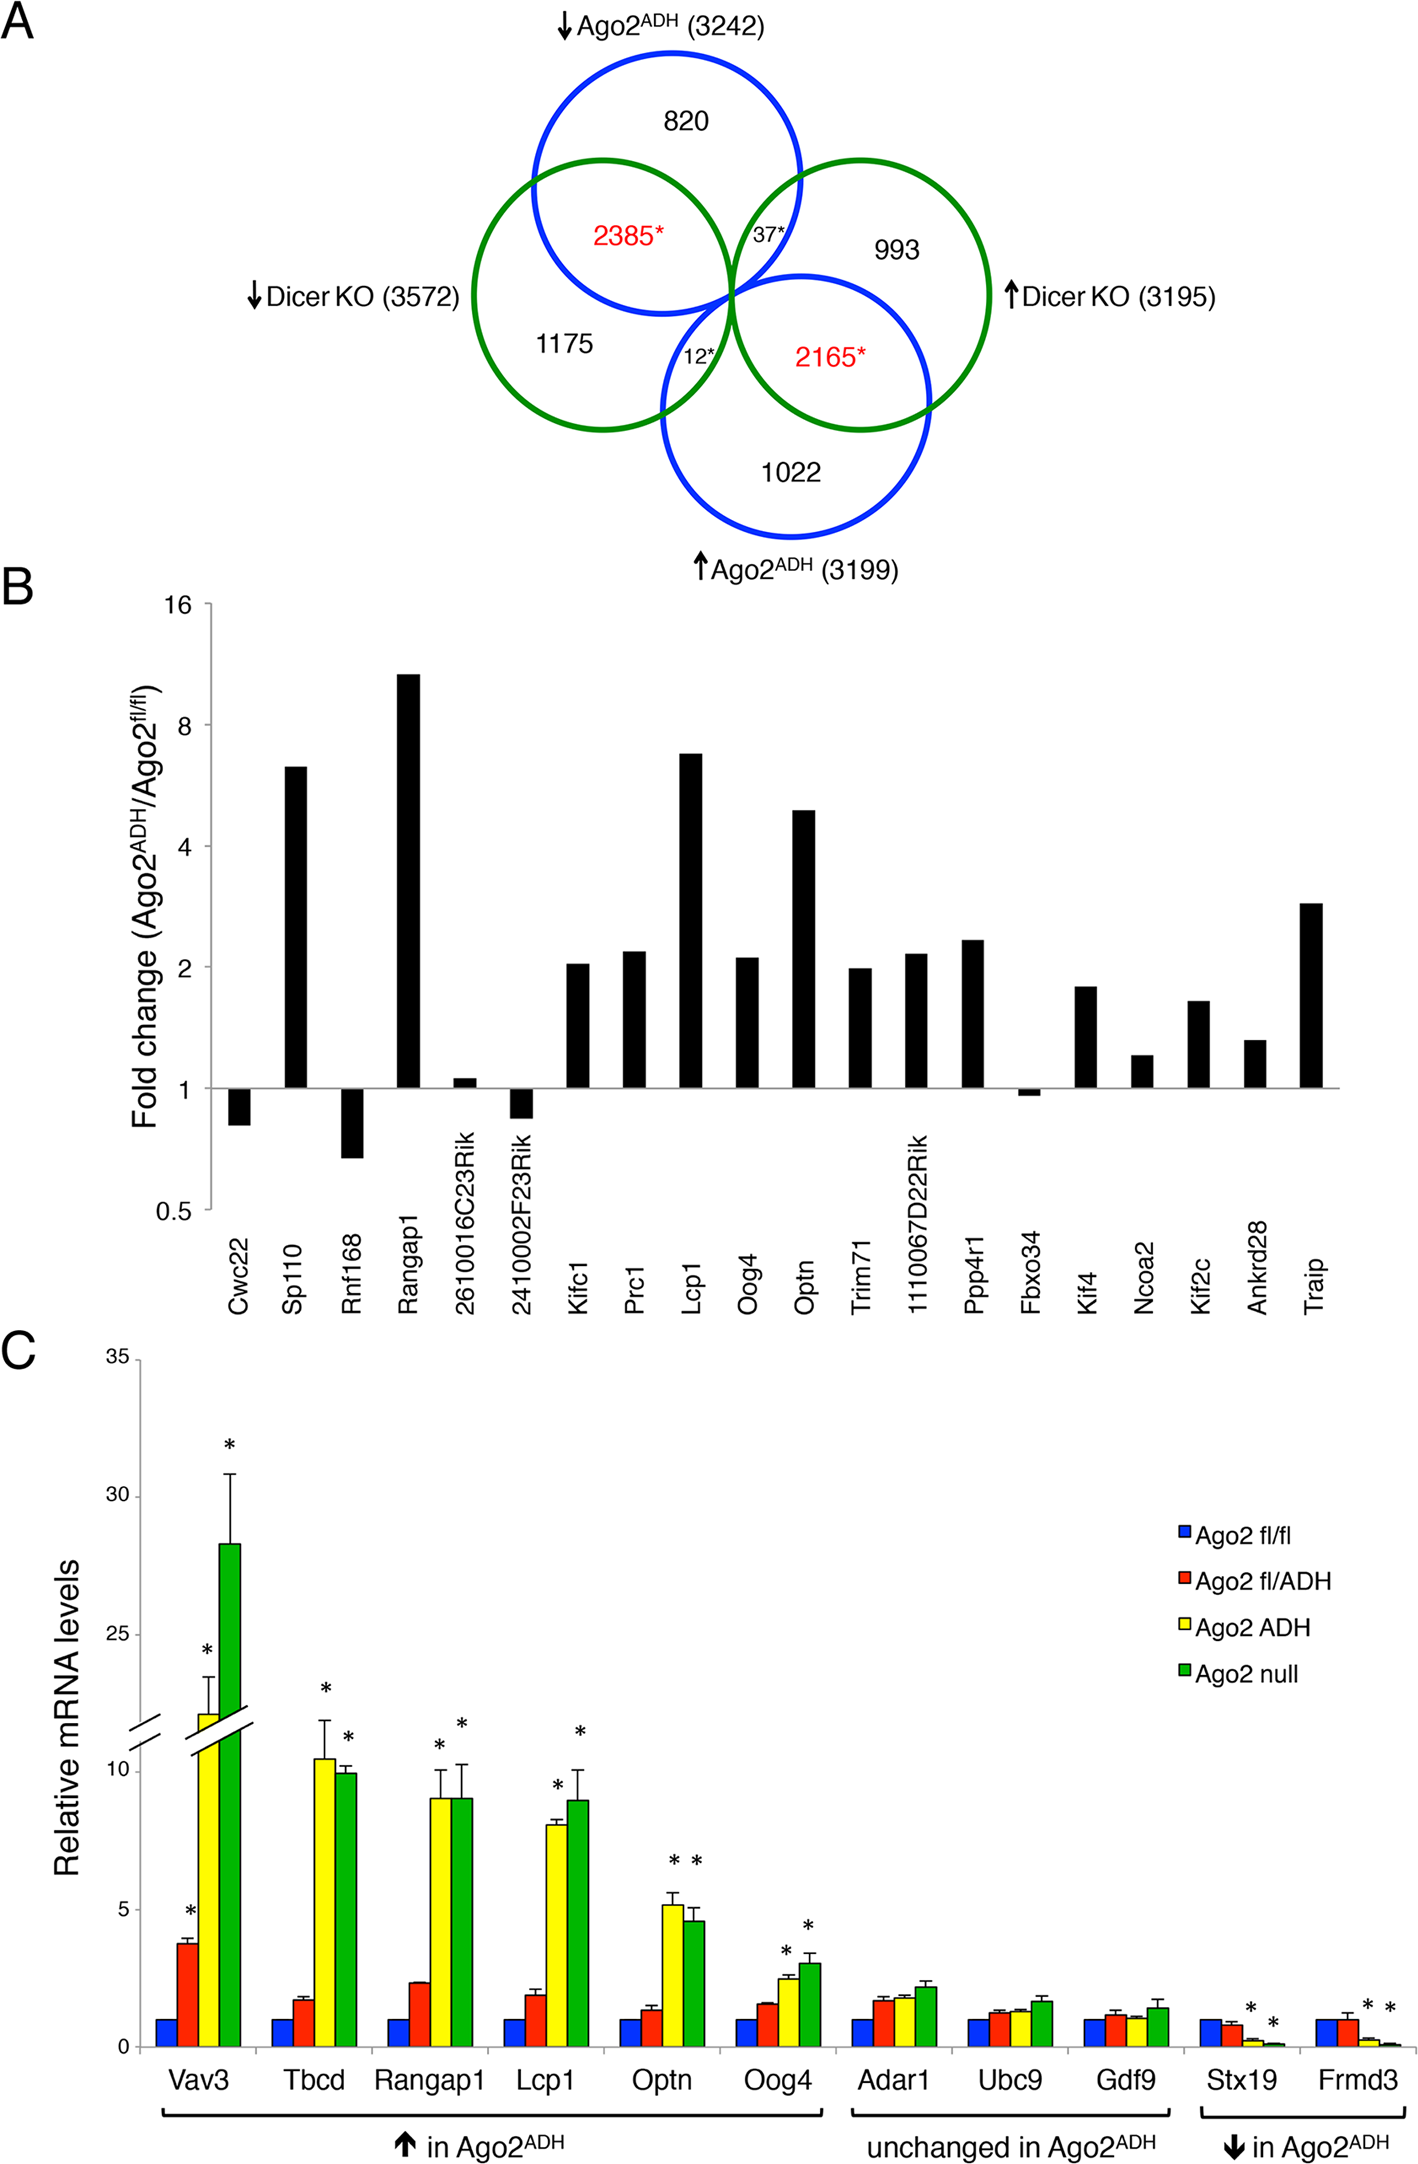 Extensive transcriptome changes, and high correlation with <i>Dicer</i> KO oocytes, in <i>Ago2</i><sup>ADH</sup> oocytes.